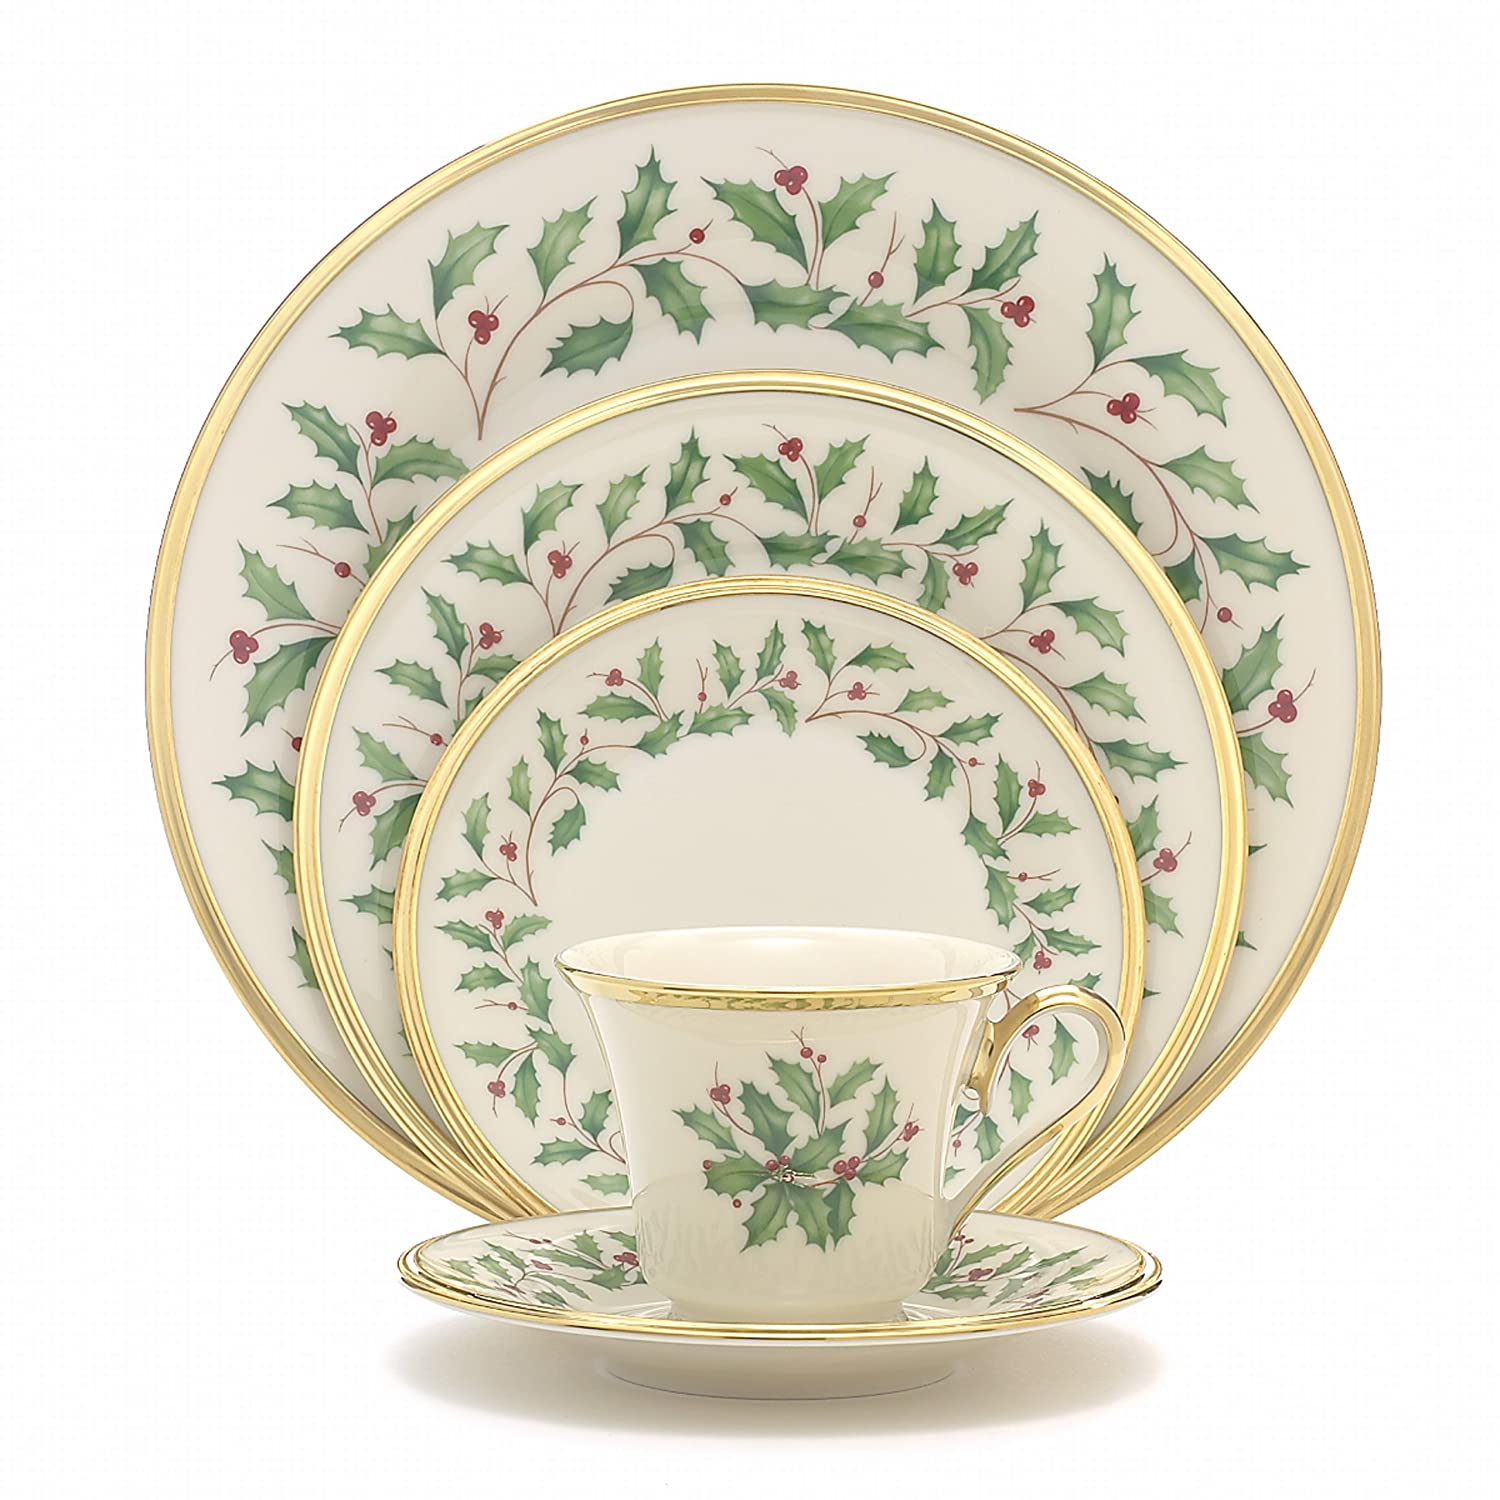 Amazon.com Lenox Holiday 5-Piece Place Setting Ivory Dinnerware Sets Kitchen u0026 Dining  sc 1 st  Amazon.com & Amazon.com: Lenox Holiday 5-Piece Place Setting Ivory: Dinnerware ...